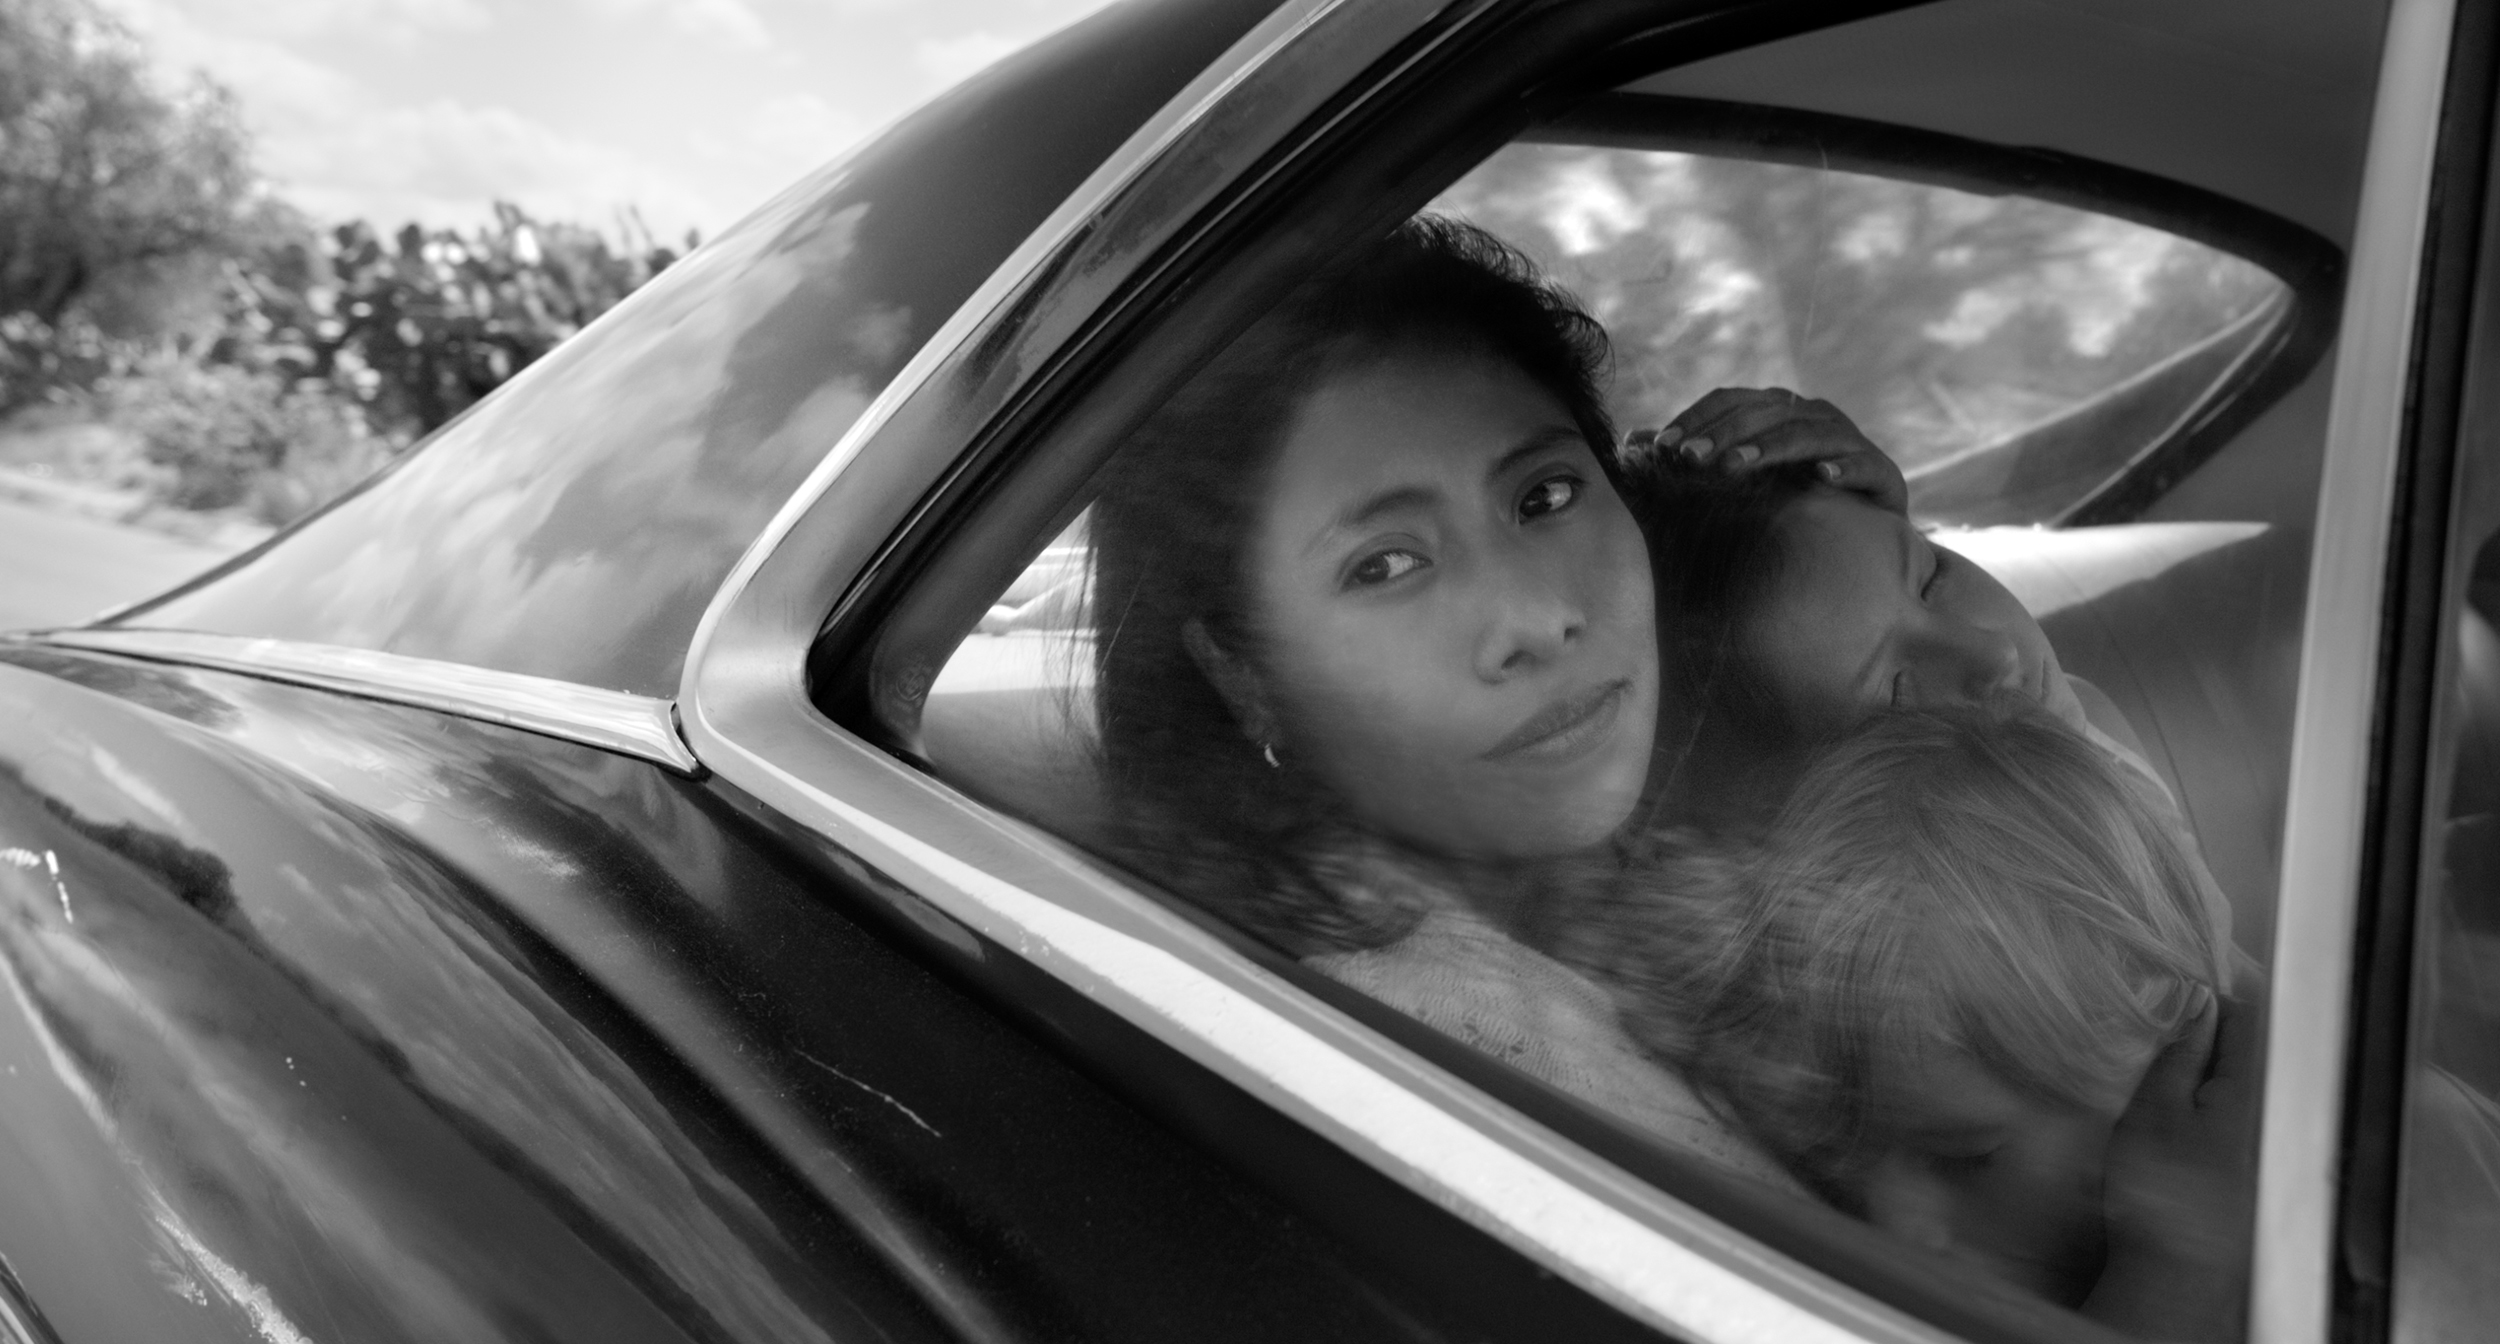 'Roma' gave them a voice: Movie spurs domestic workers' activism